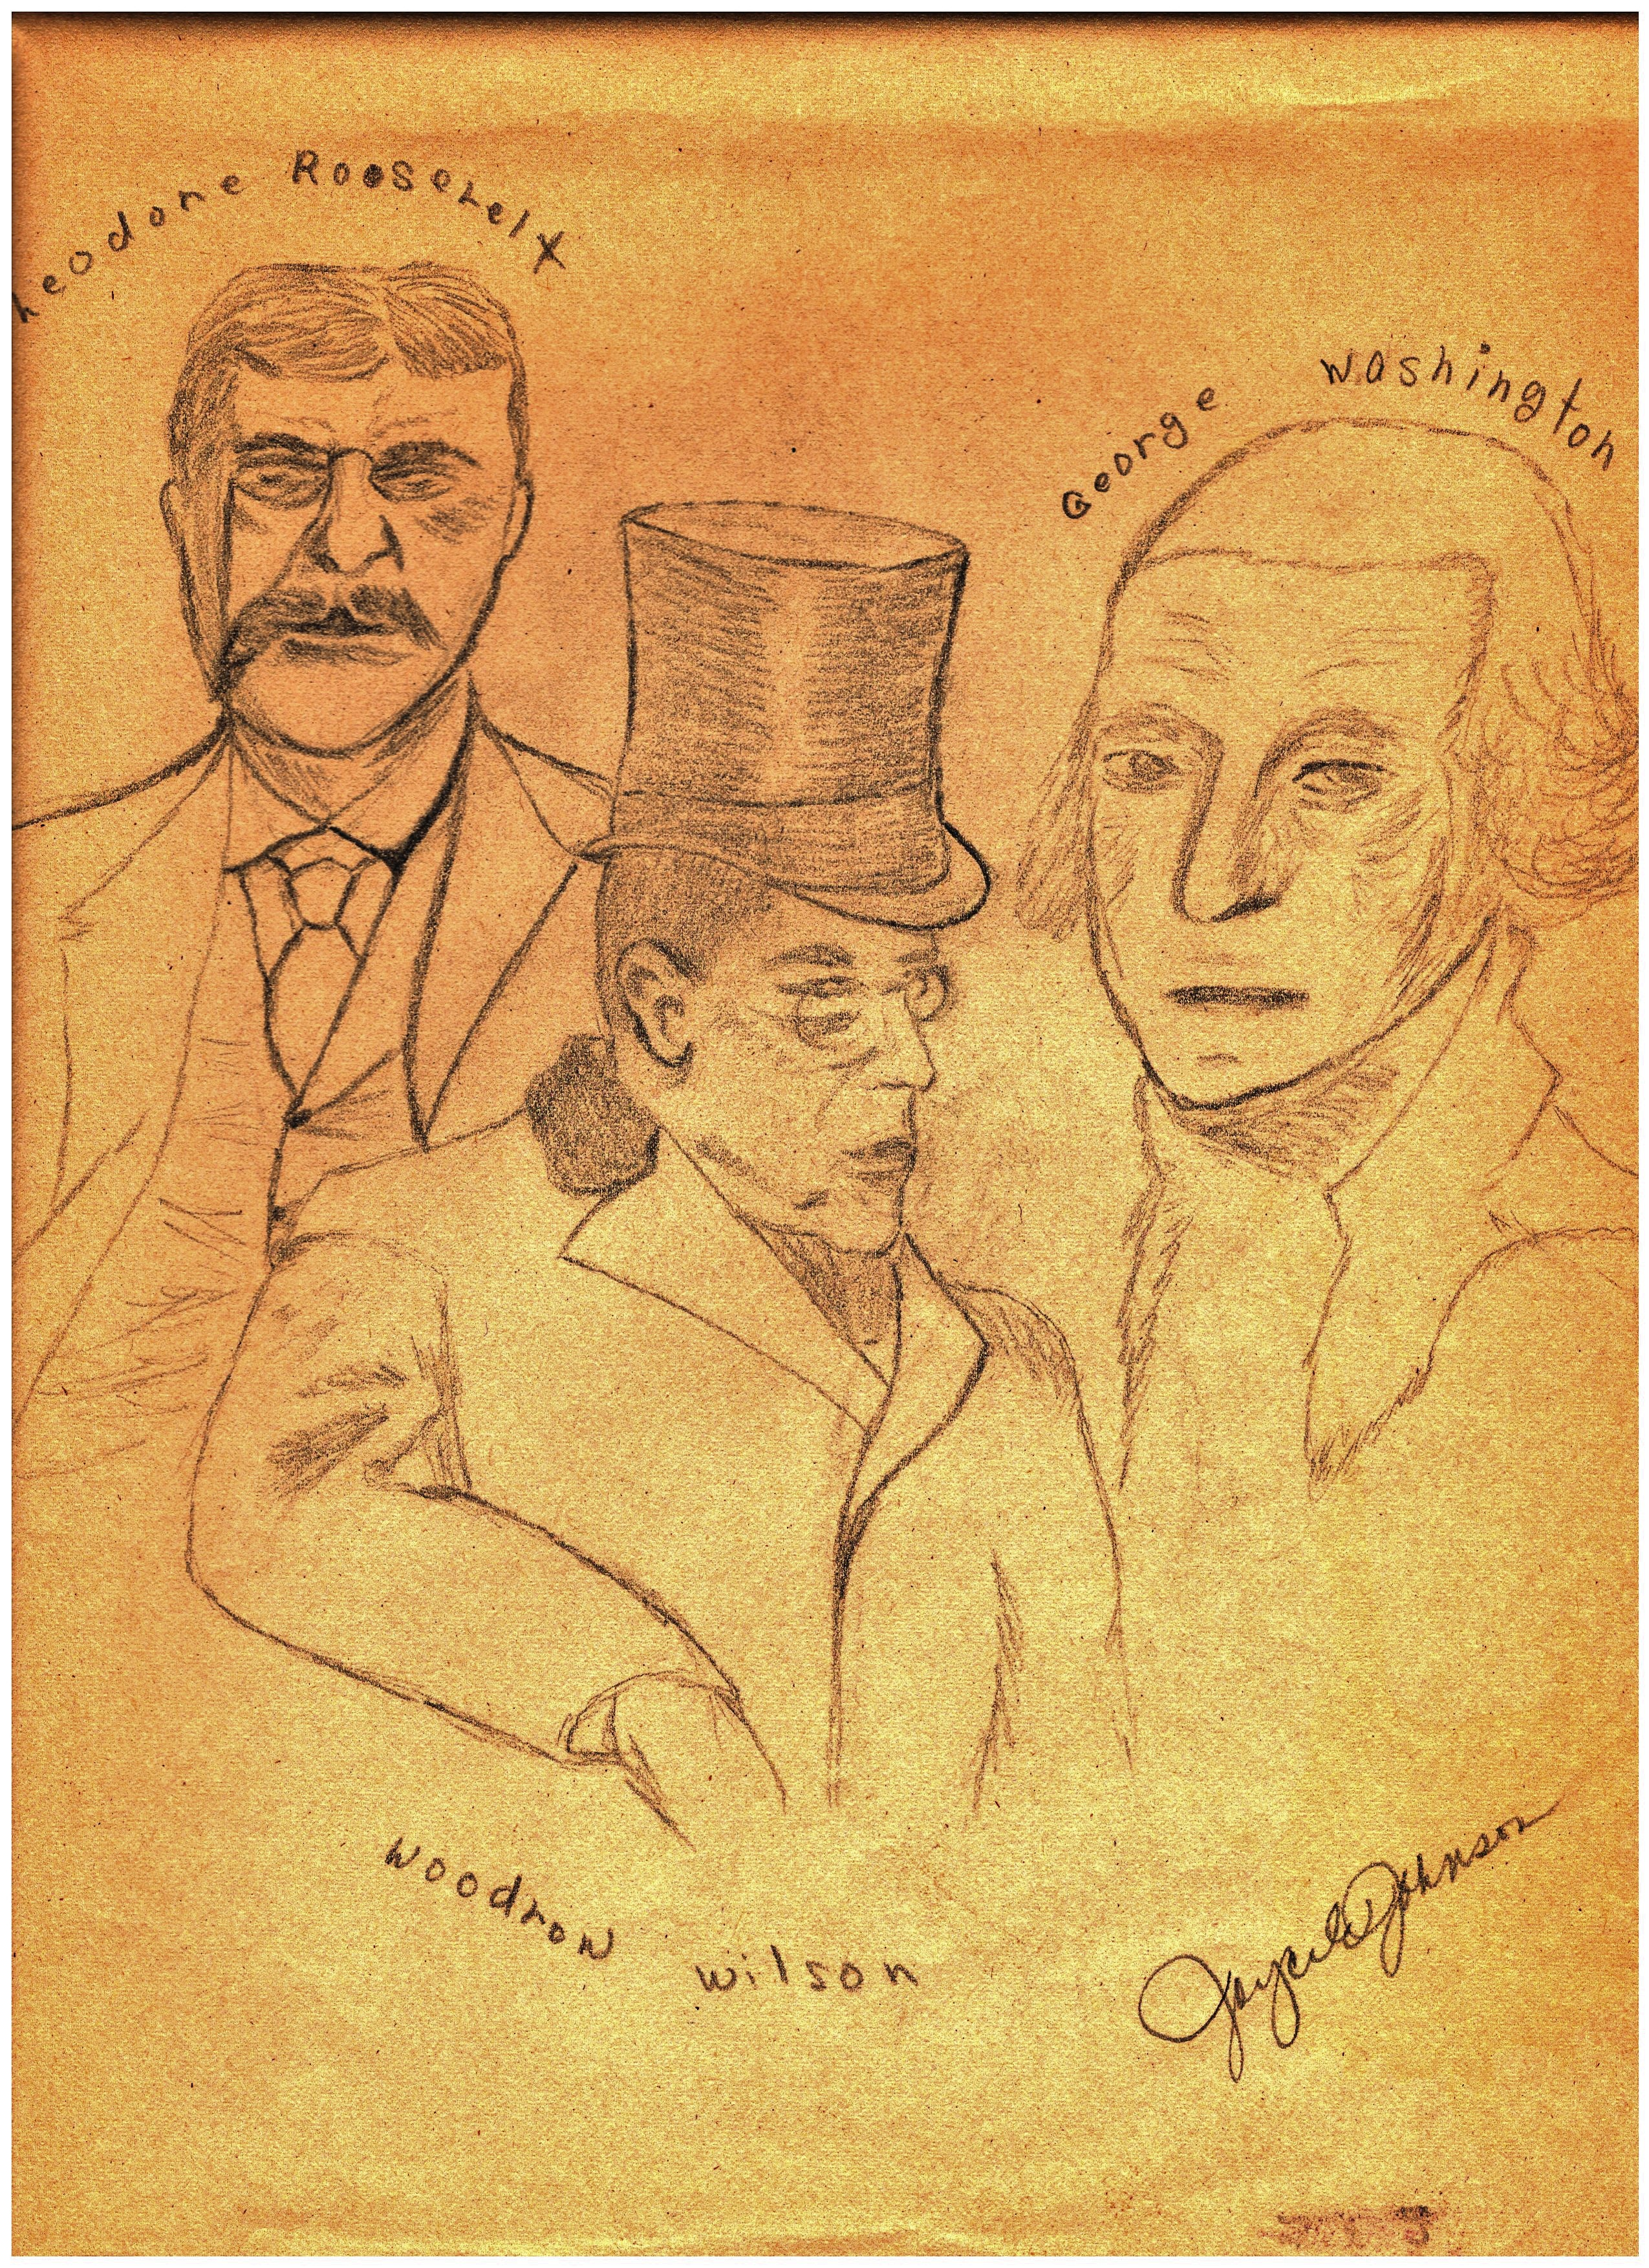 An old ketch of mine from many years ago of Theodore Roosevelt (upper left), Woodrow Wilson (center) and George Washington (right)